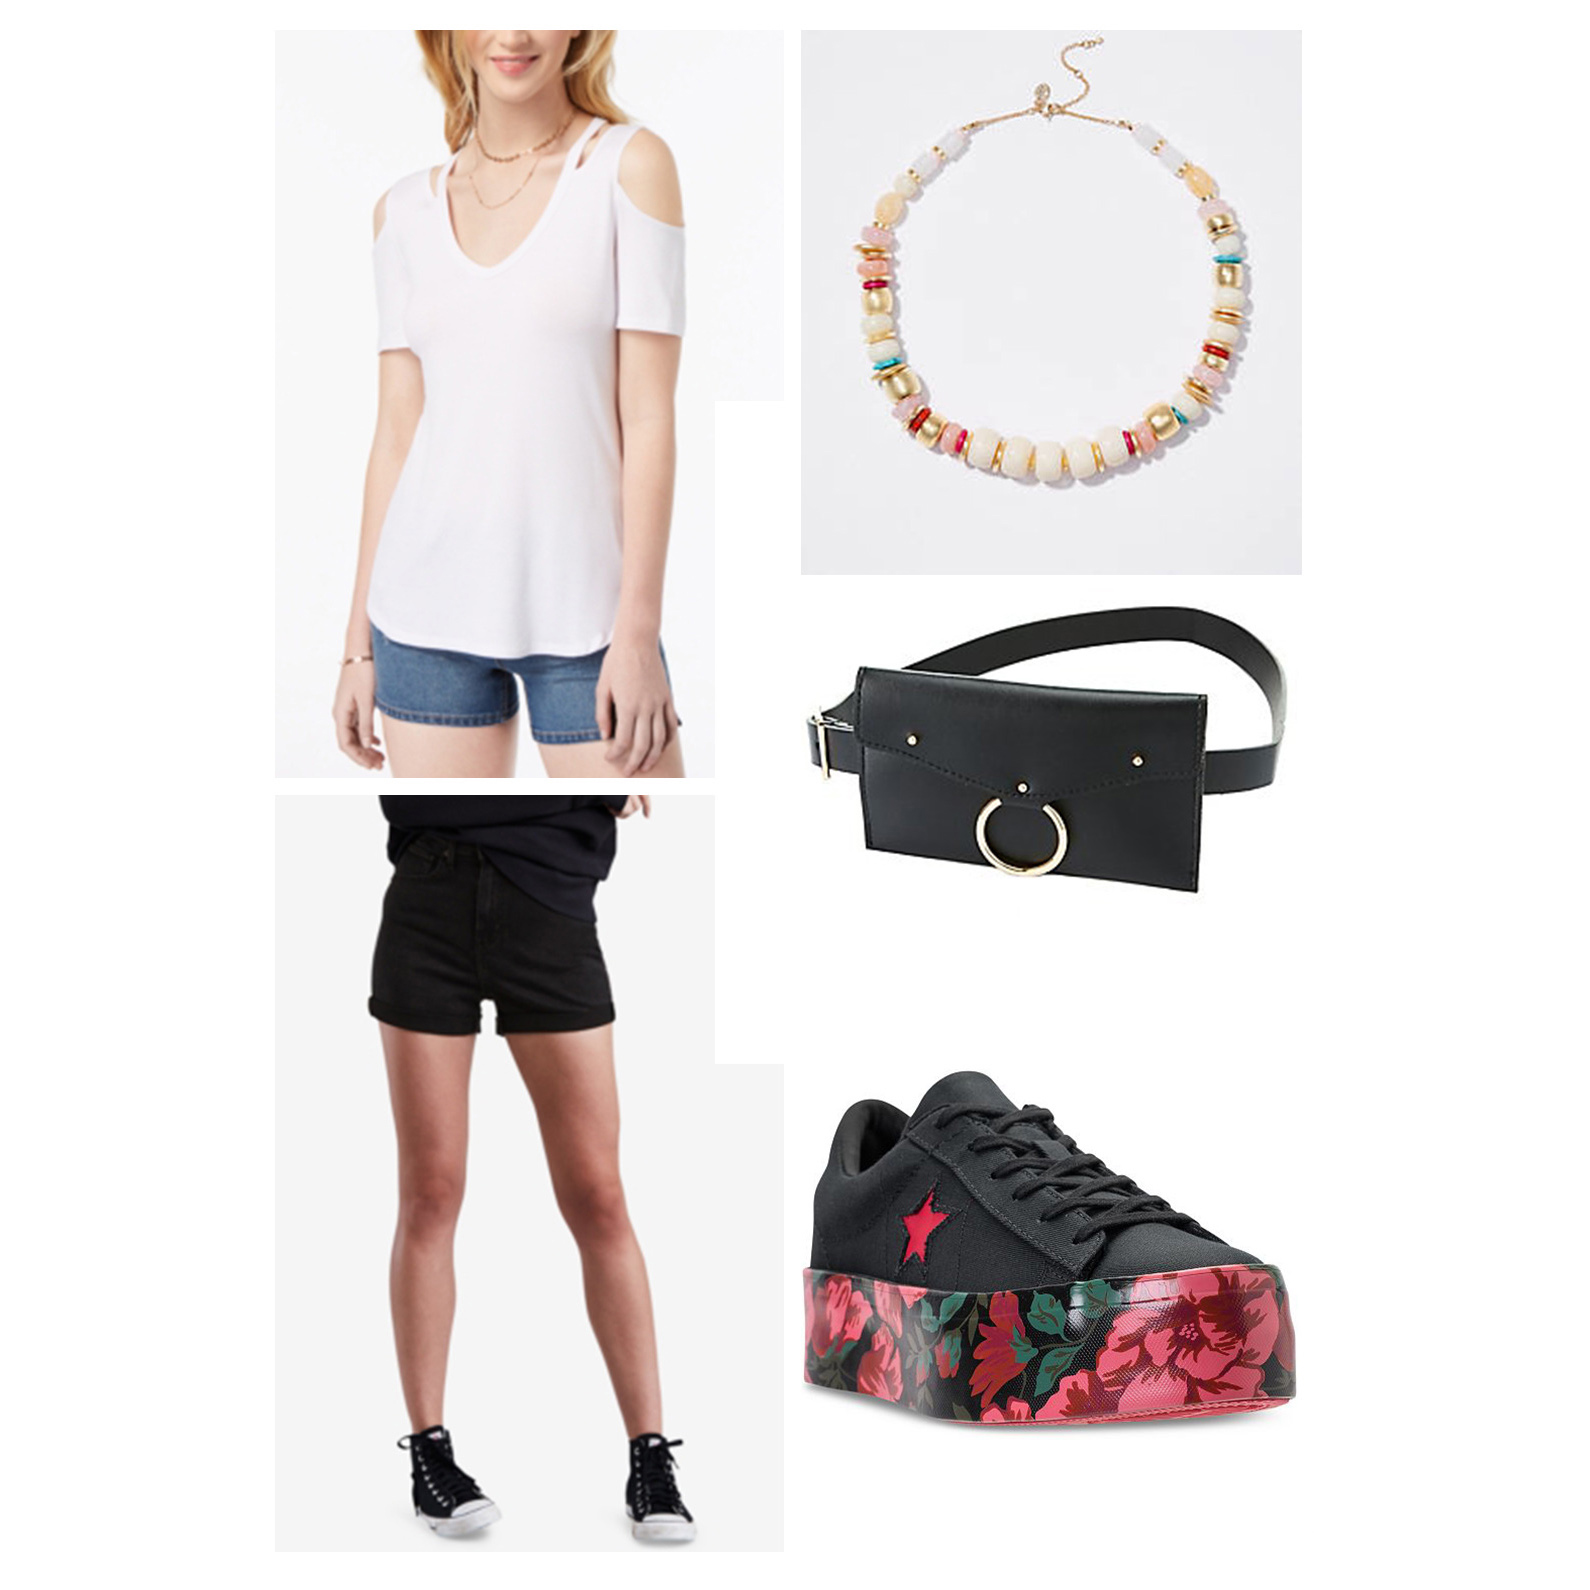 summer-oufit-weekend-2018-black-shorts-white-tee-cutout-bead-necklace-belt-bag-how-to-wear-floral-print-platform-sneakers-converse-fashion-ideas.jpg